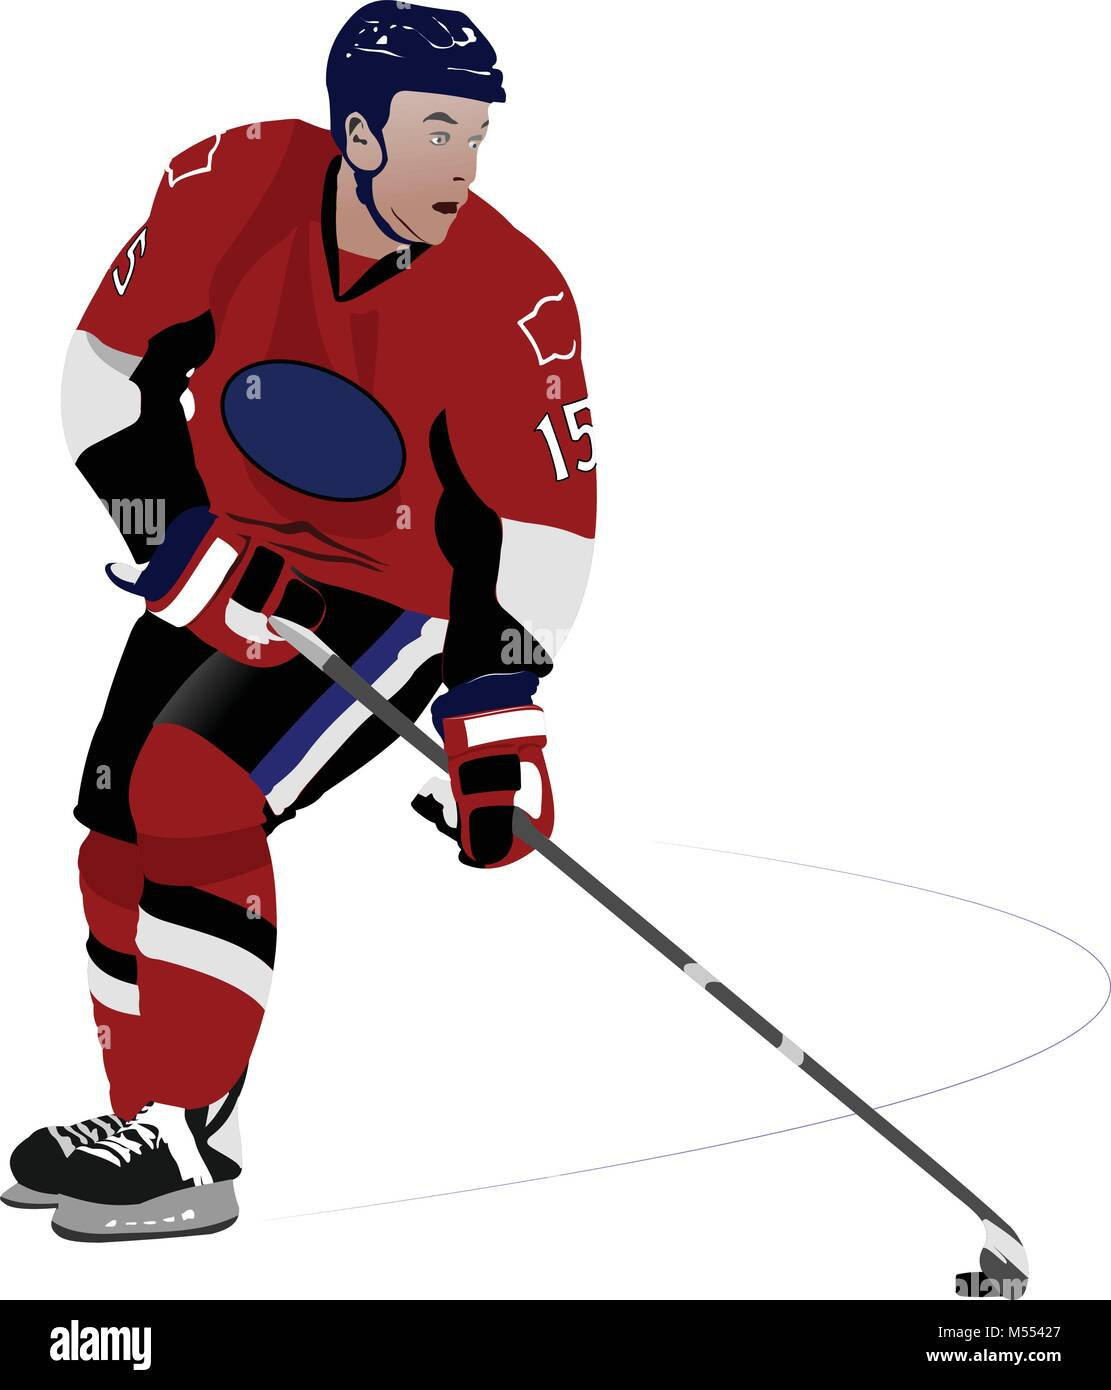 Ice hockey player. Colored Vector illustration for designers - Stock Vector